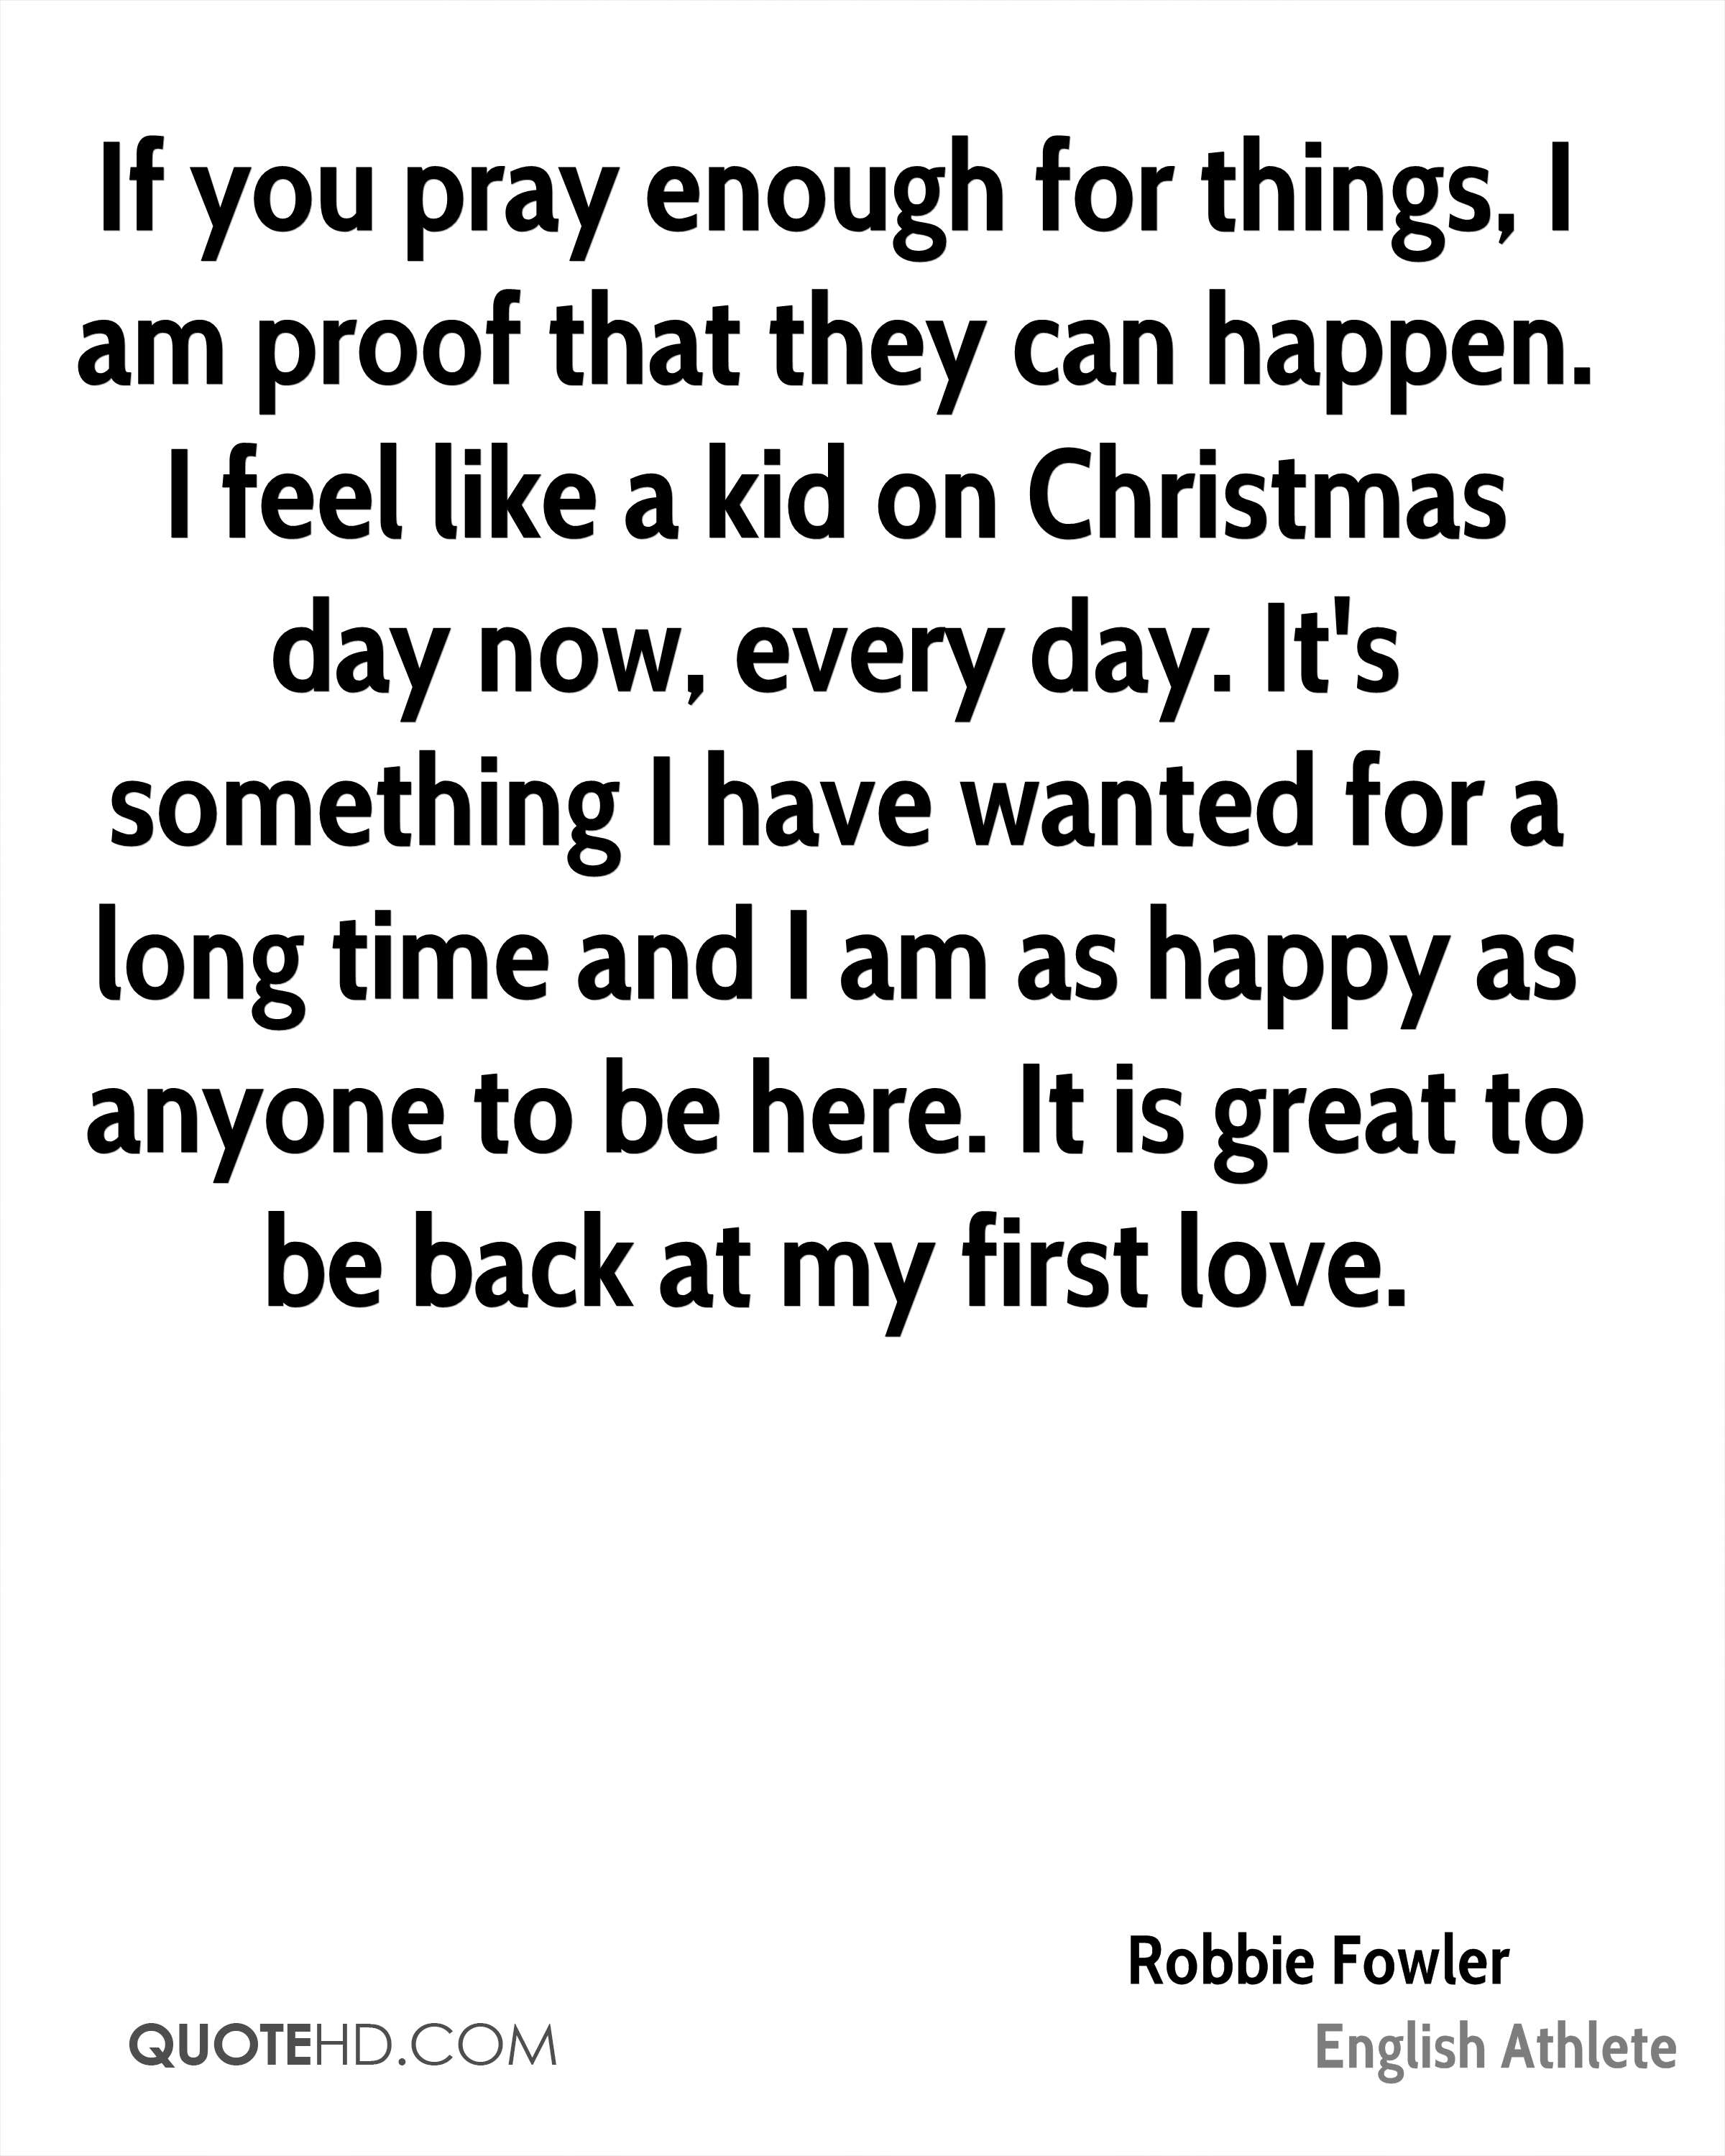 Robbie Fowler Christmas Quotes | QuoteHD